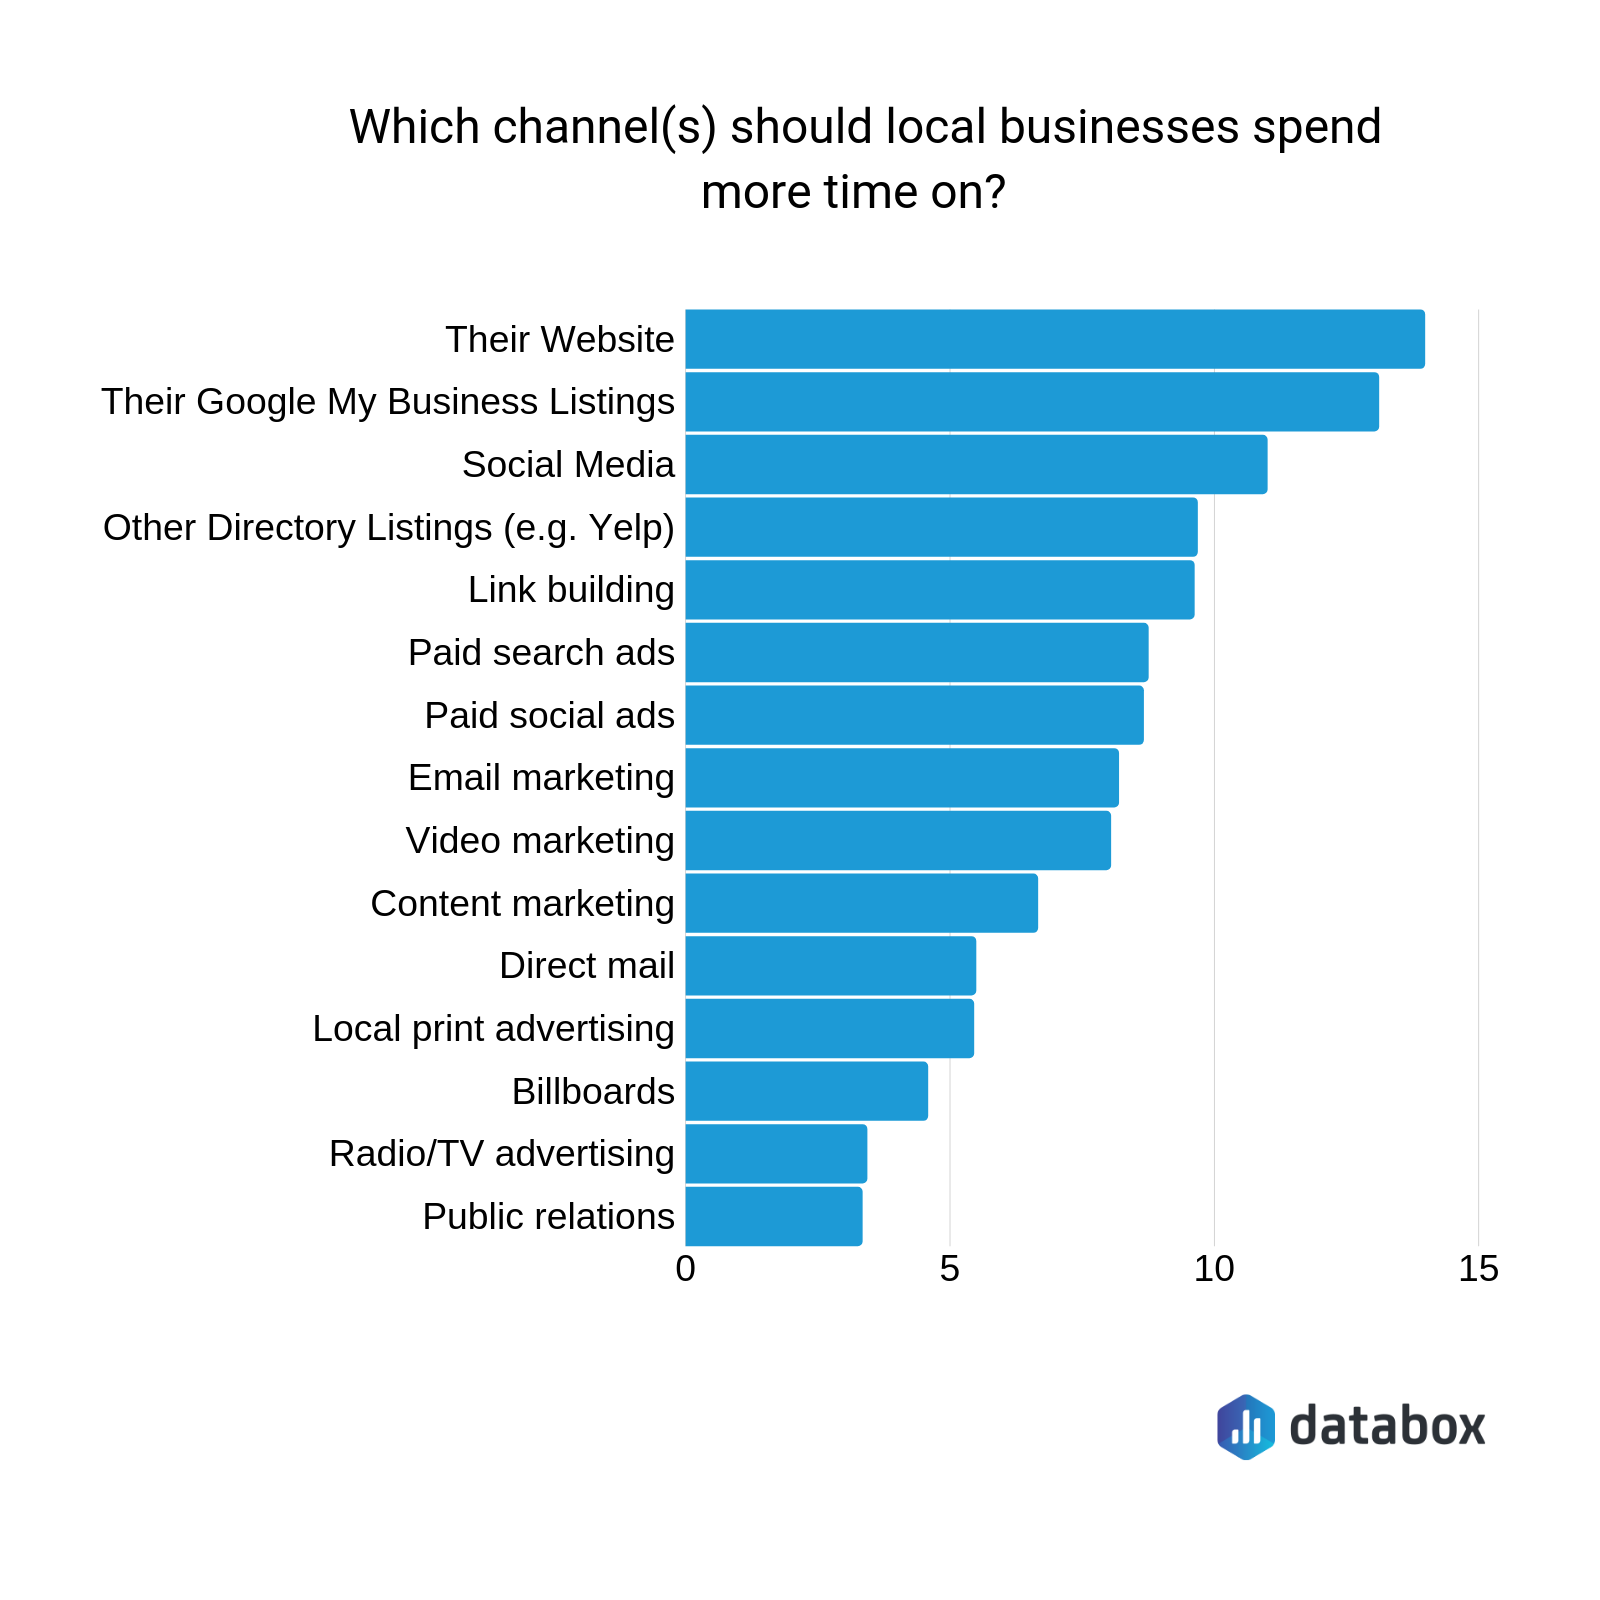 most important marketing channels for local businesses